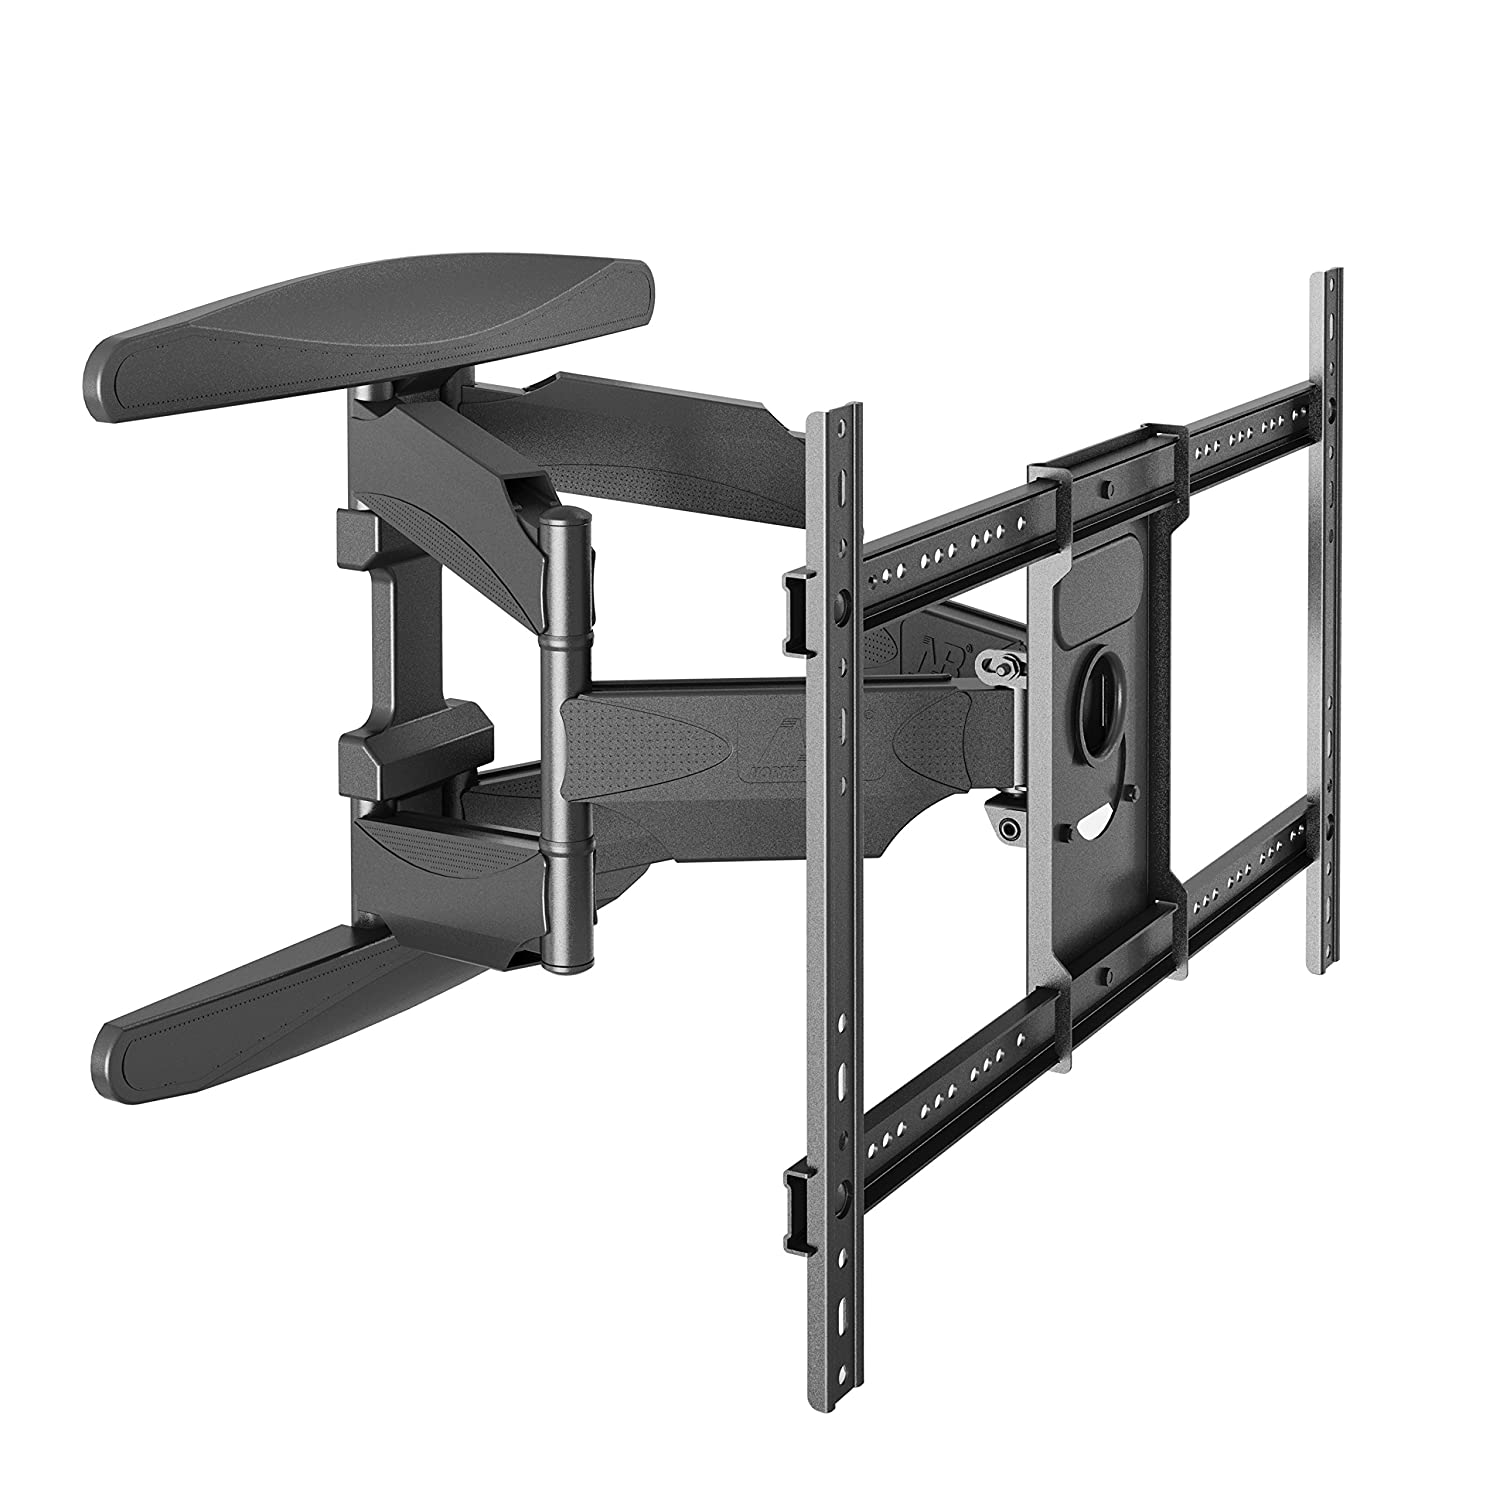 North Bayou Articulating Full Motion Cantilever Wall Mount P6 for Flat Panel TV Screens 40'' -70 inch upto 100 lbs NBP6